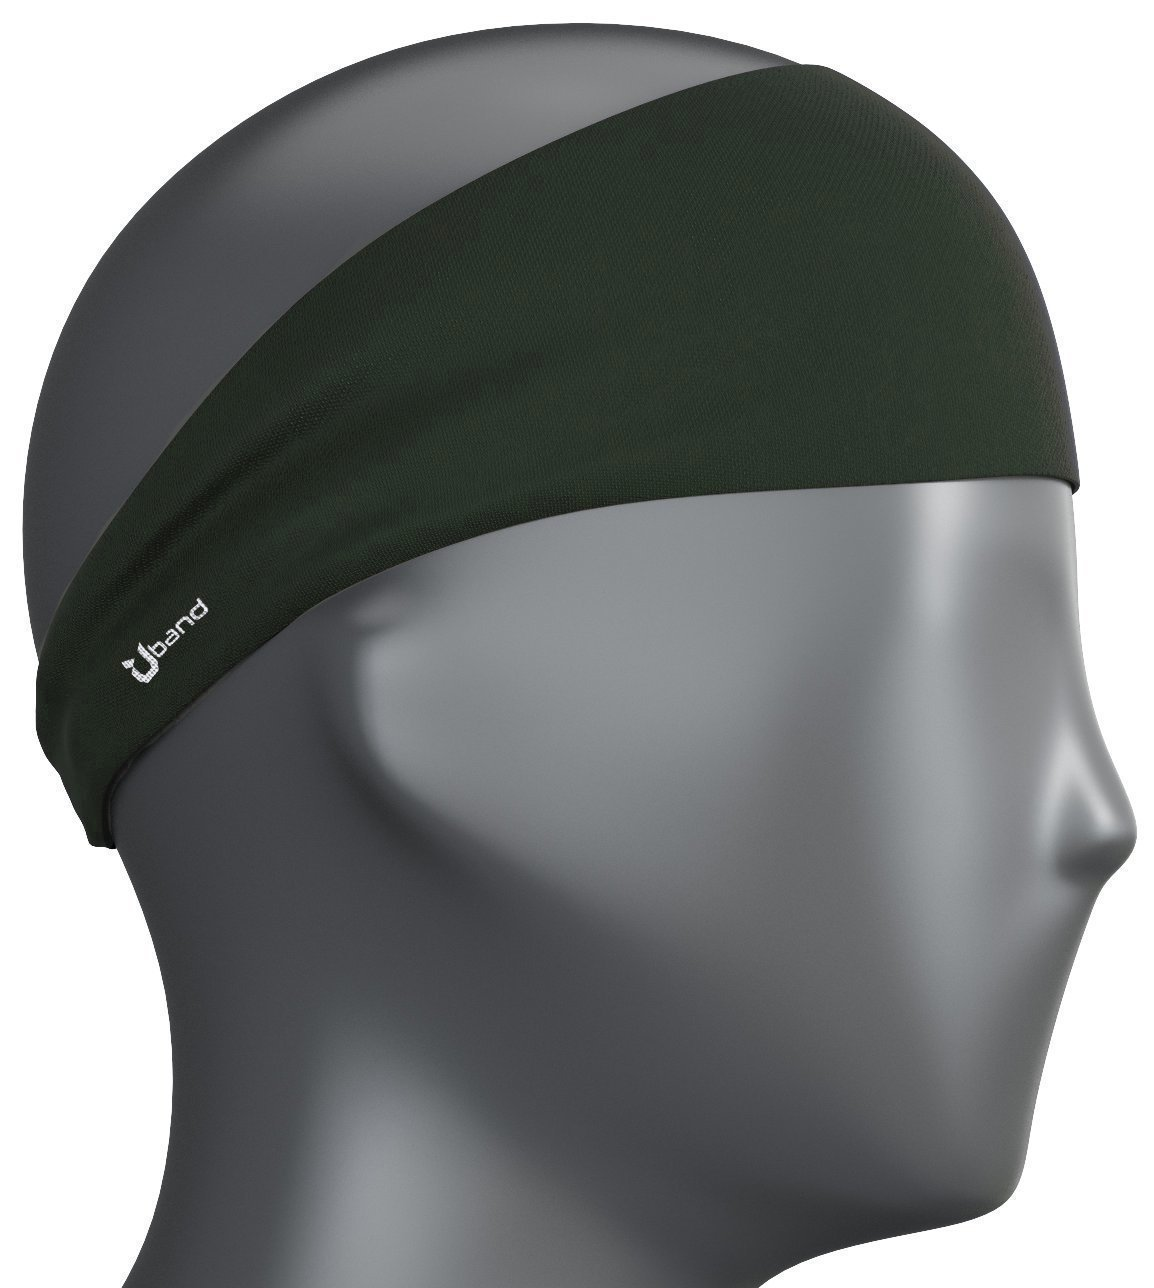 Self Pro Mens Headband - Guys Sweatband & Sports Headband for Running, Cross Training, Racquetball, Working Out - Performance Stretch & Moisture Wicking - Dark Green by Self Pro